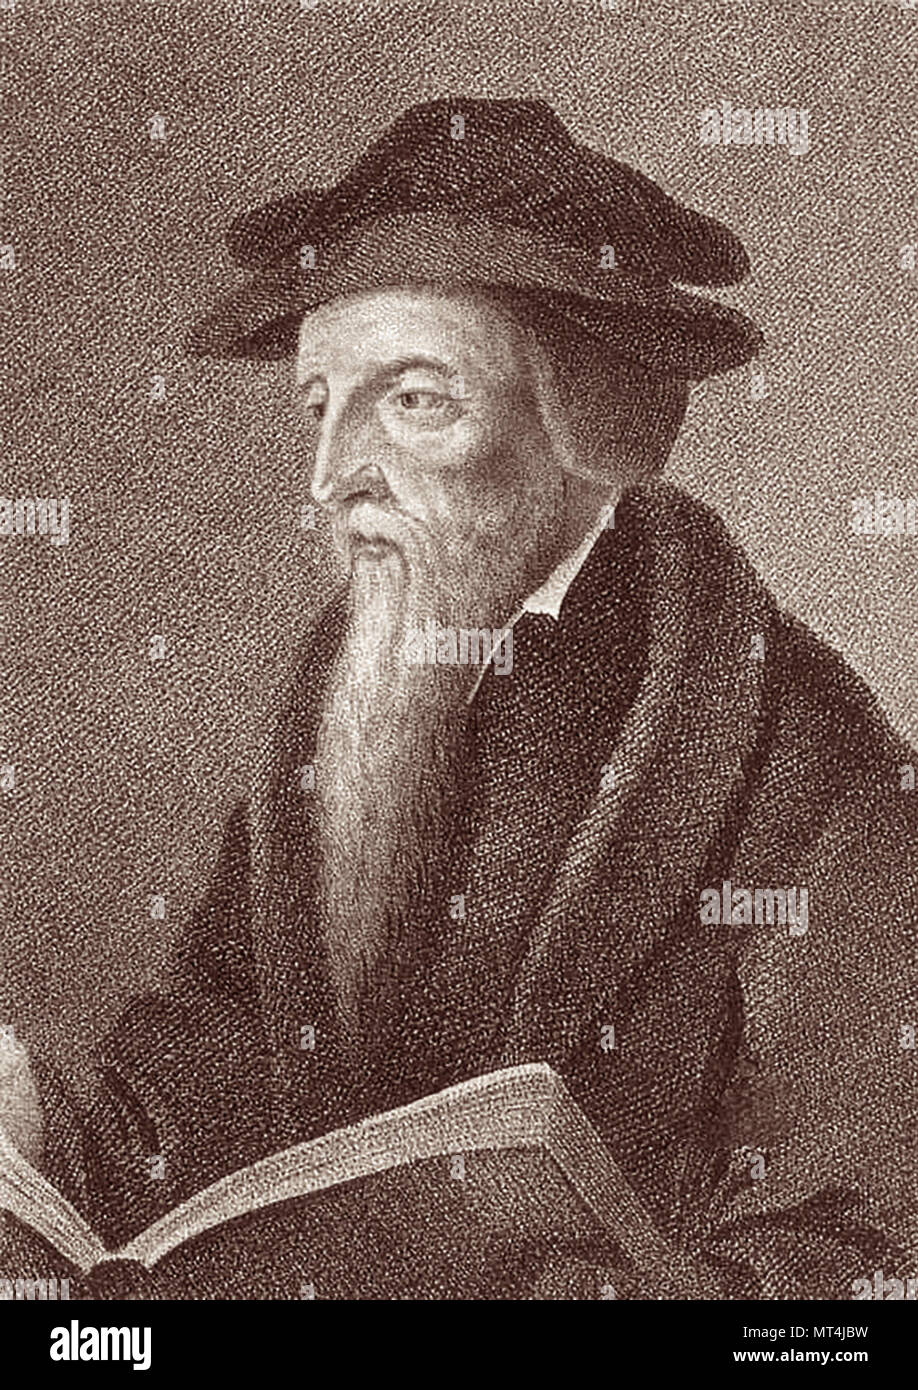 John Calvin (1509–1564) was a French Protestant theologian, pastor and key reformer in Geneva, Switzerland during the Protestant Reformation. His views of Christian theology later become known as Calvinism. - Stock Image